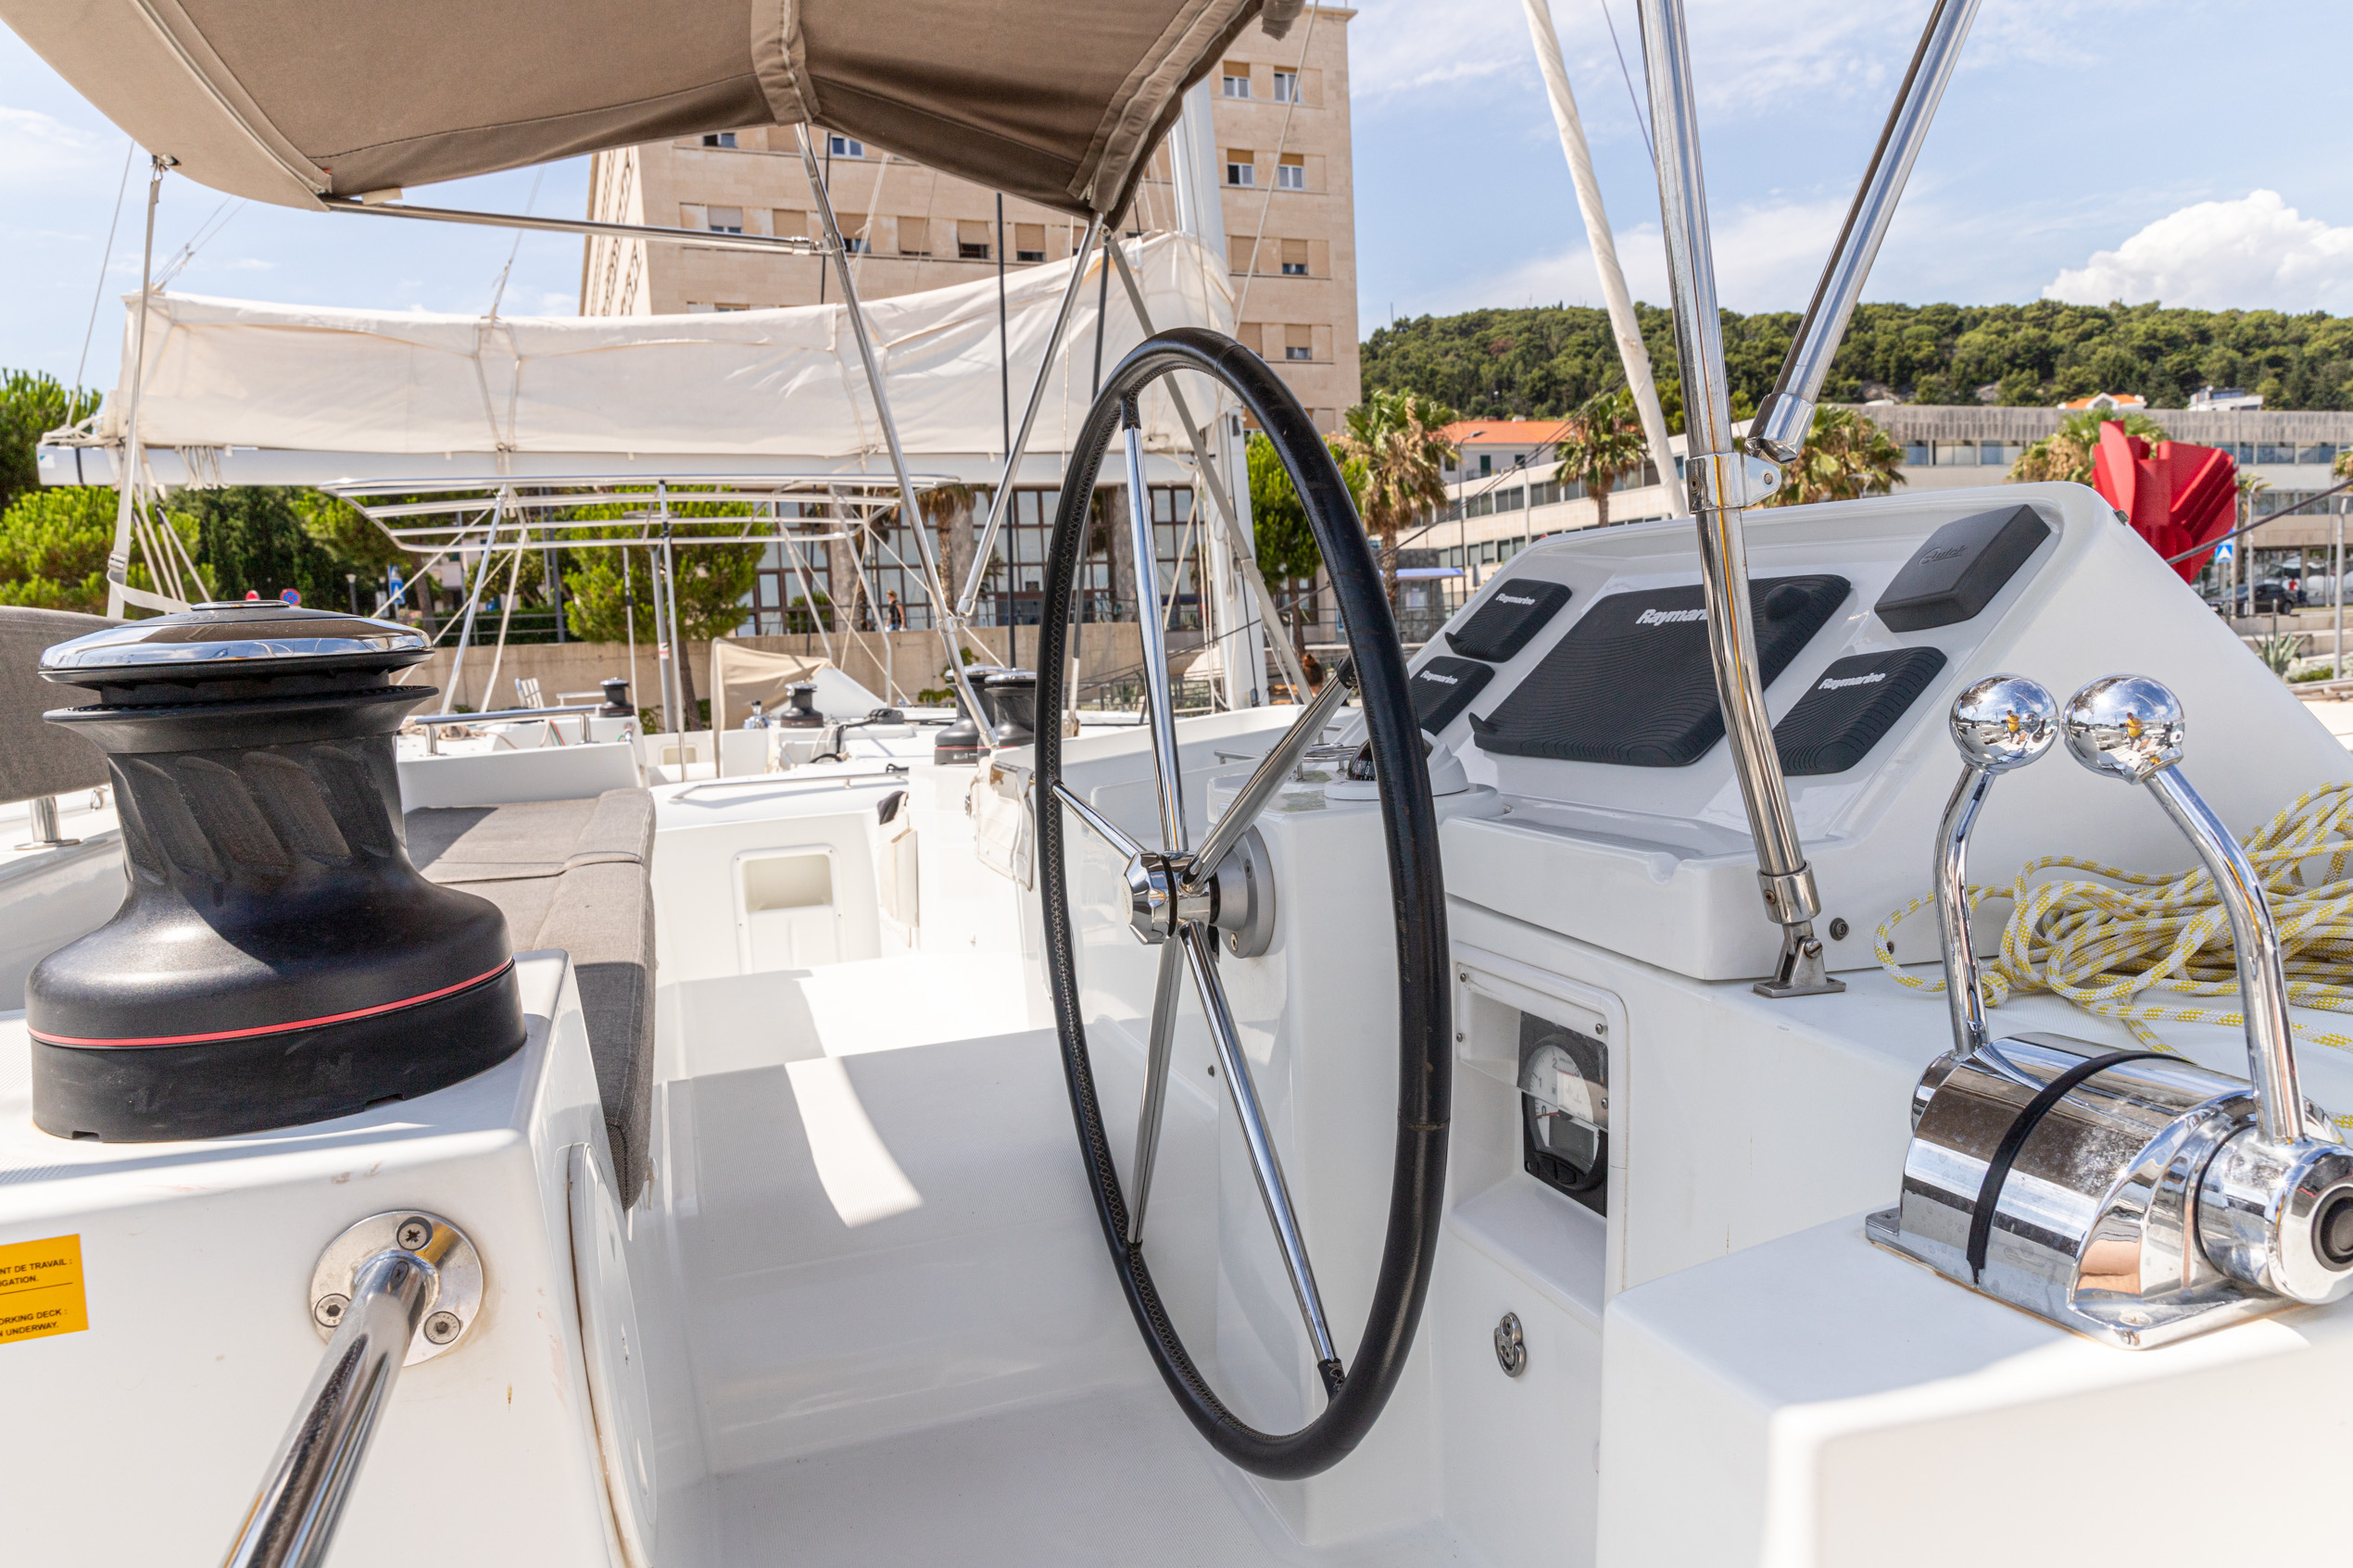 Lagoon 450 (2014) equipped with generator, A/C (sa (MUSTRA I)  - 4